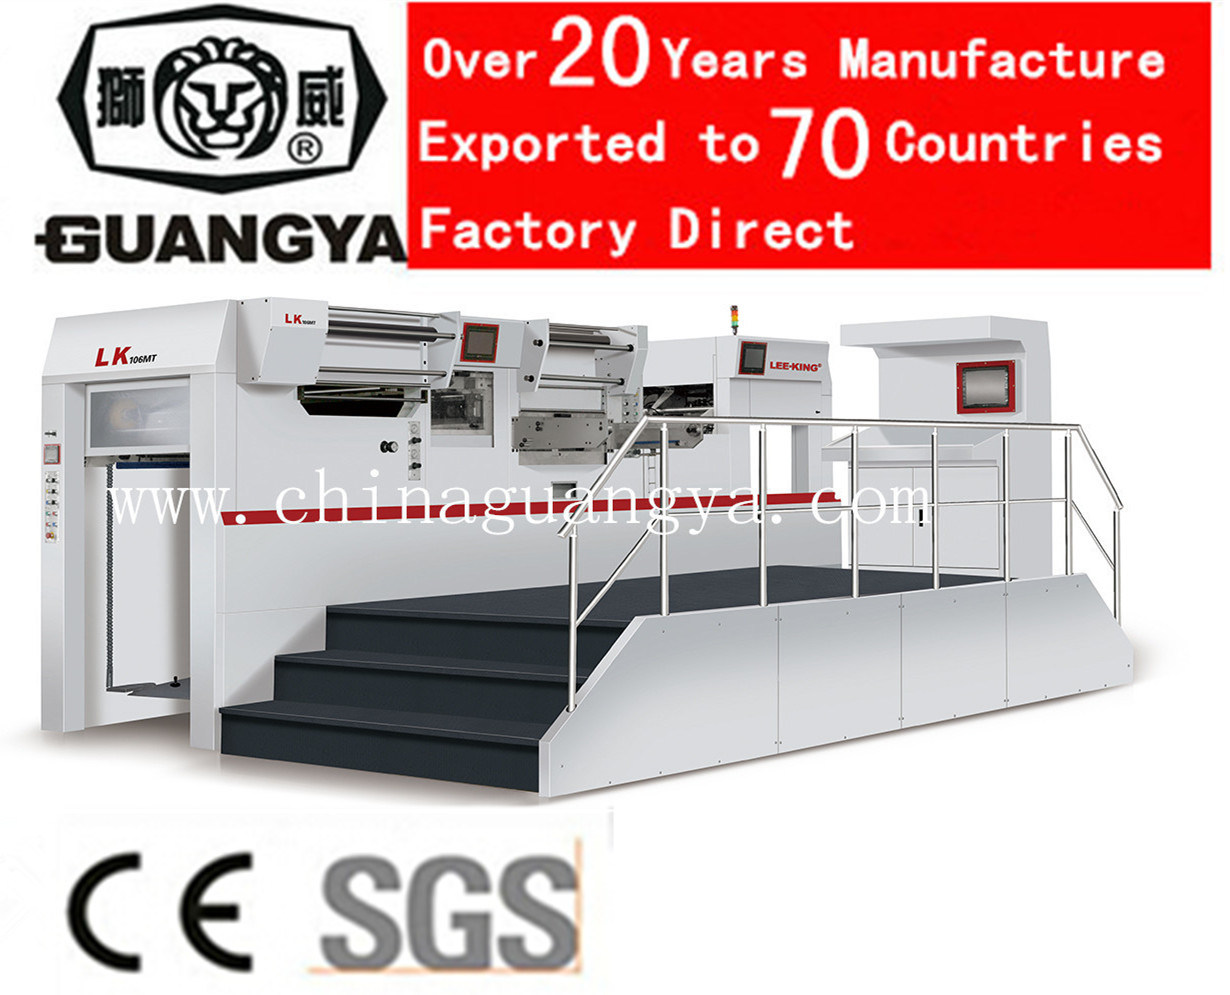 Automatic Foil Stamping and Die Cutting Machine with 5 Group Foil Feed (LK106MT)